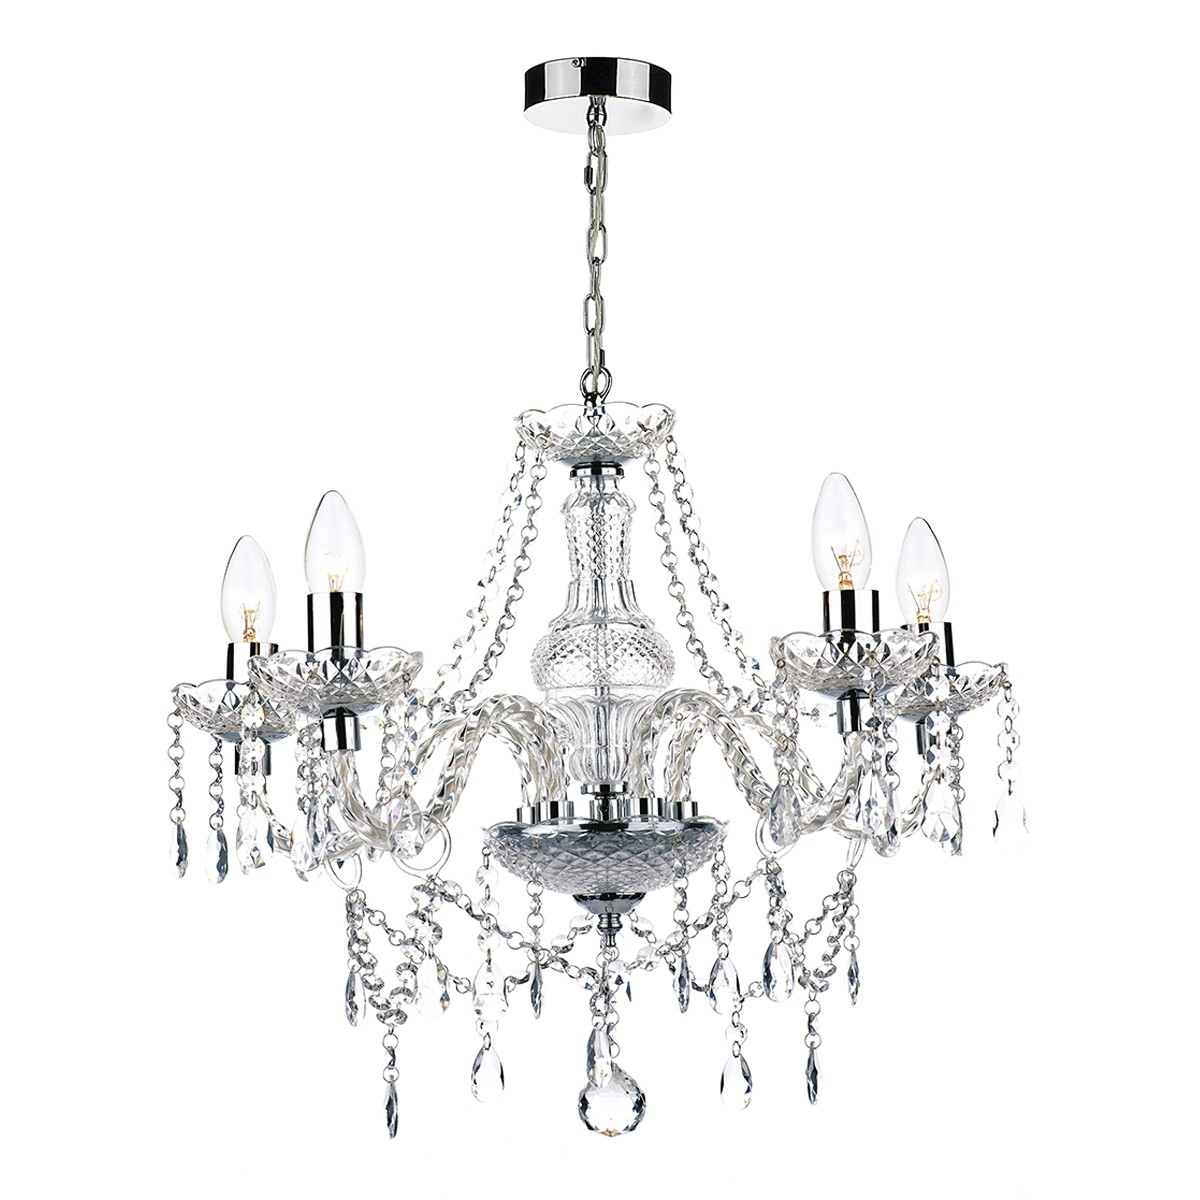 5 Light Chandelier Polished Chrome Acrylic Glass Within Chrome And Glass Chandelier (Photo 1 of 15)